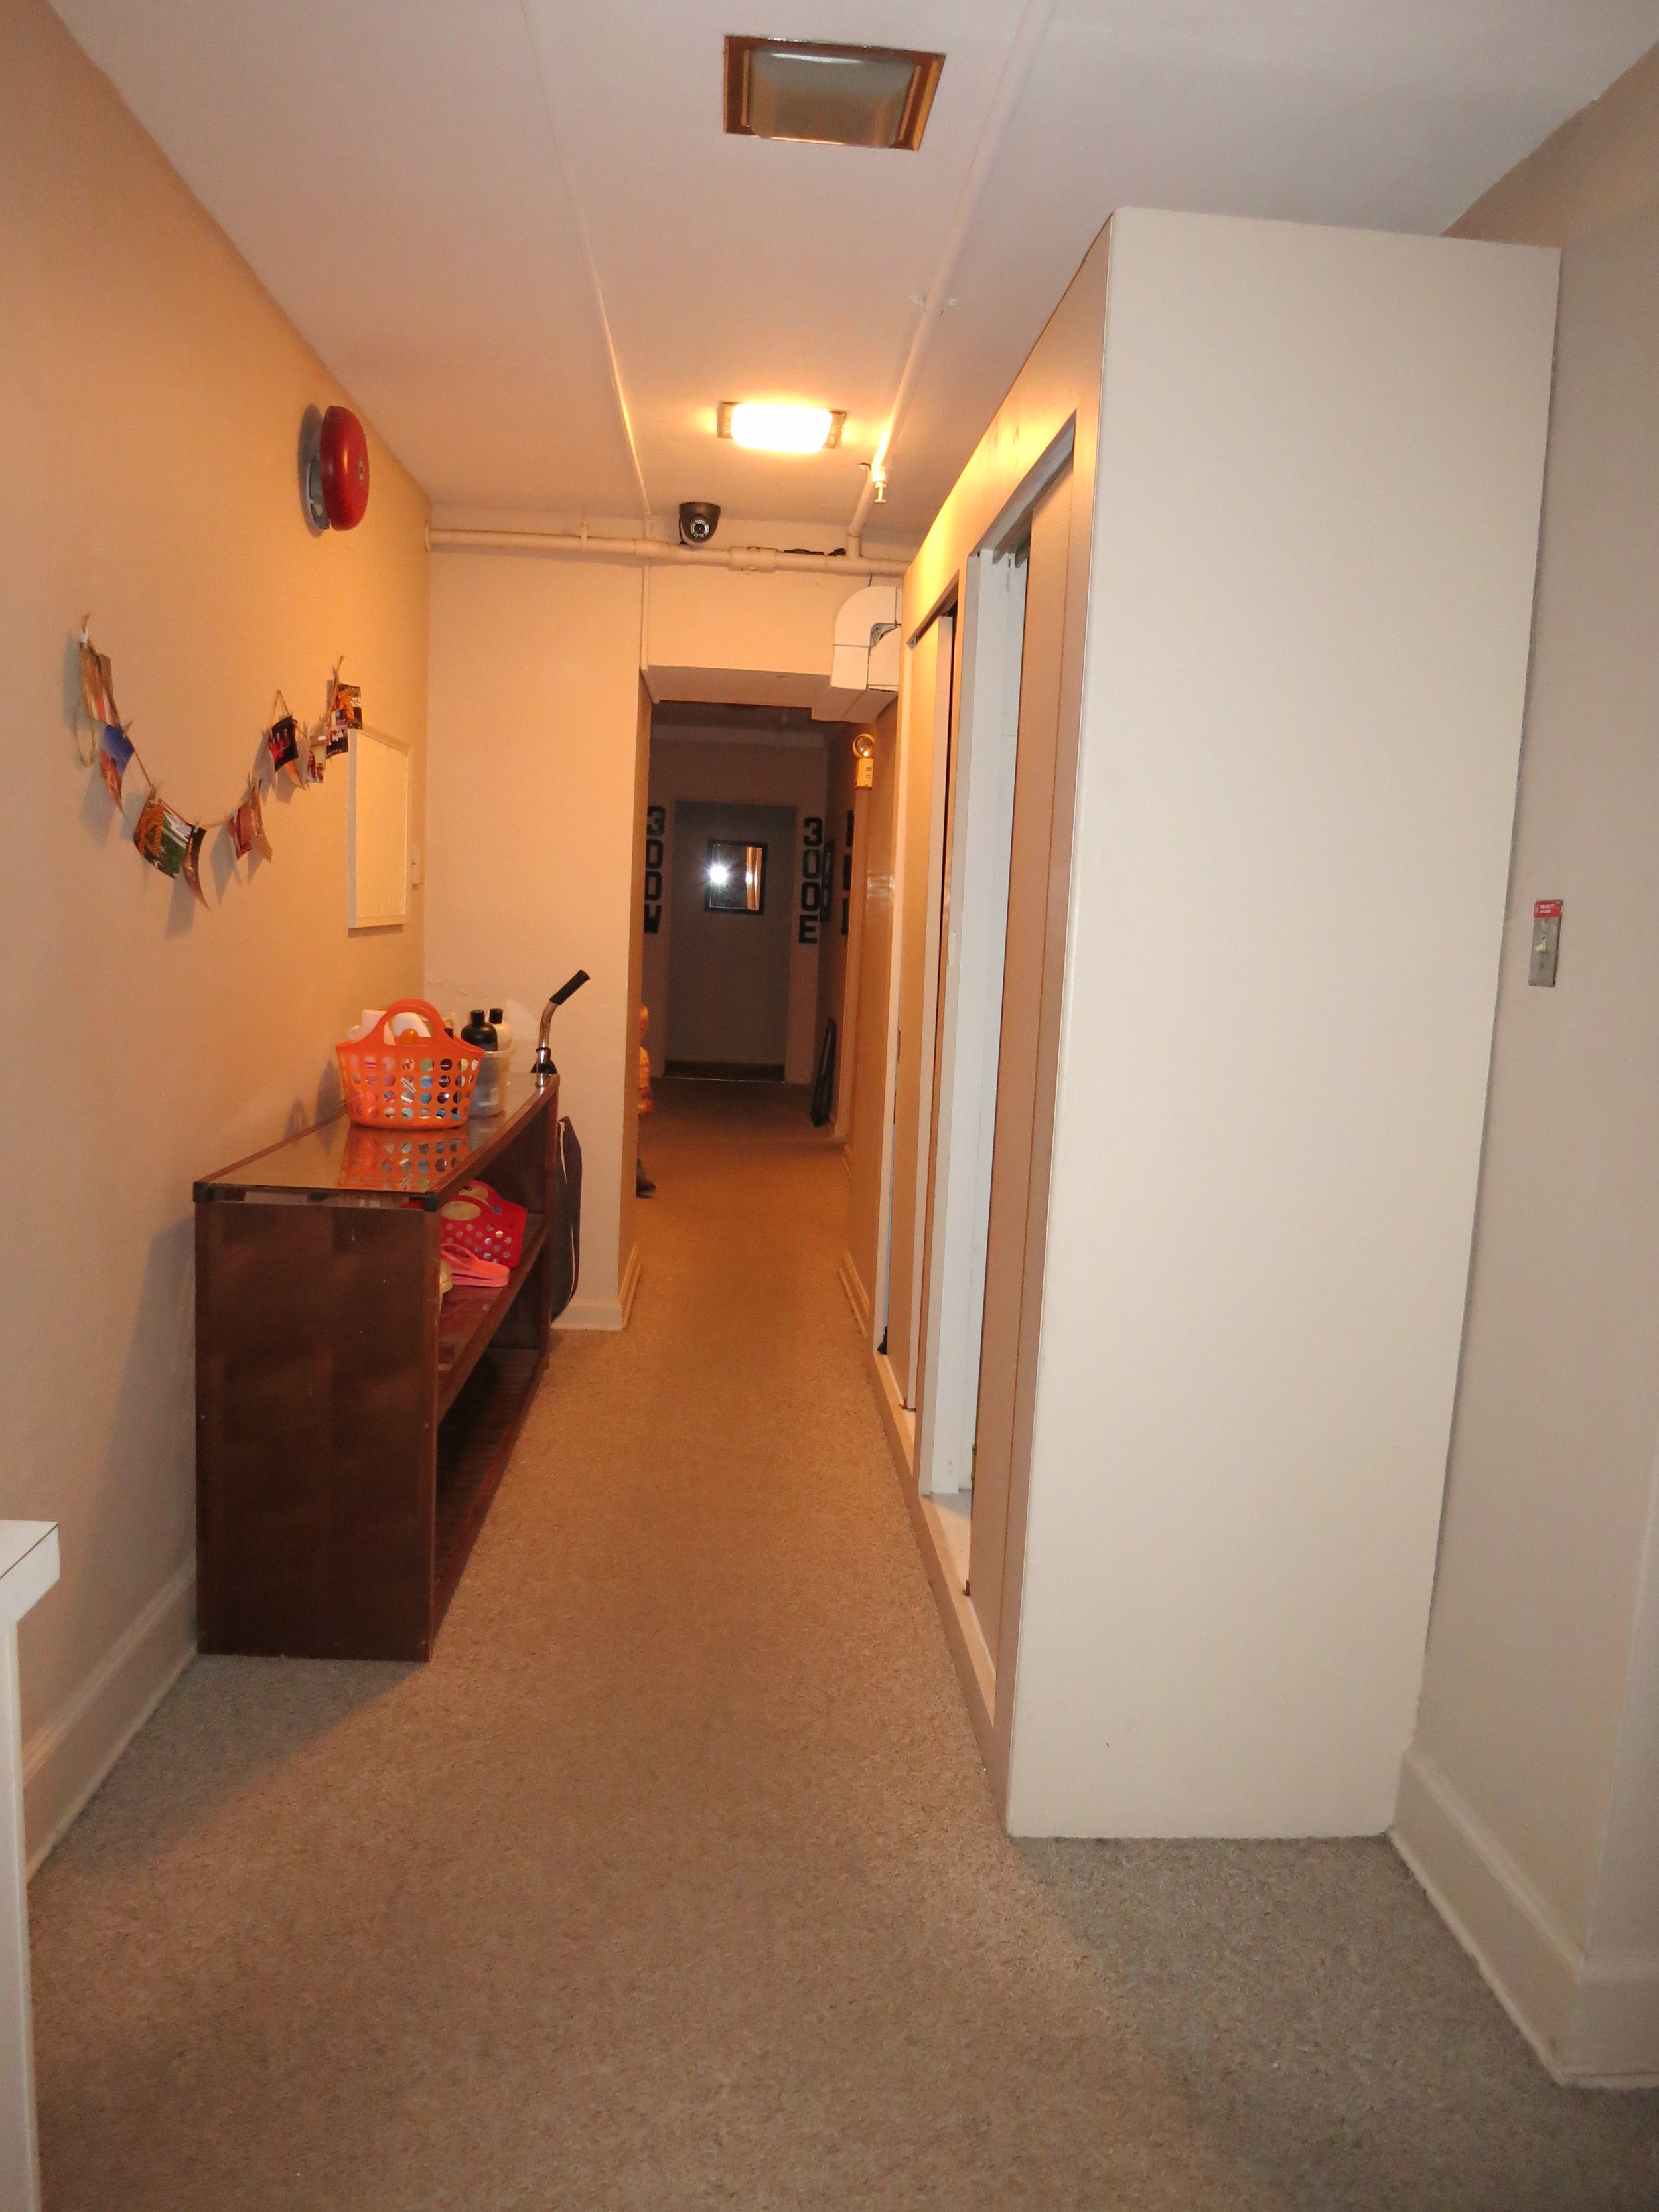 Typical corridor - BEFORE